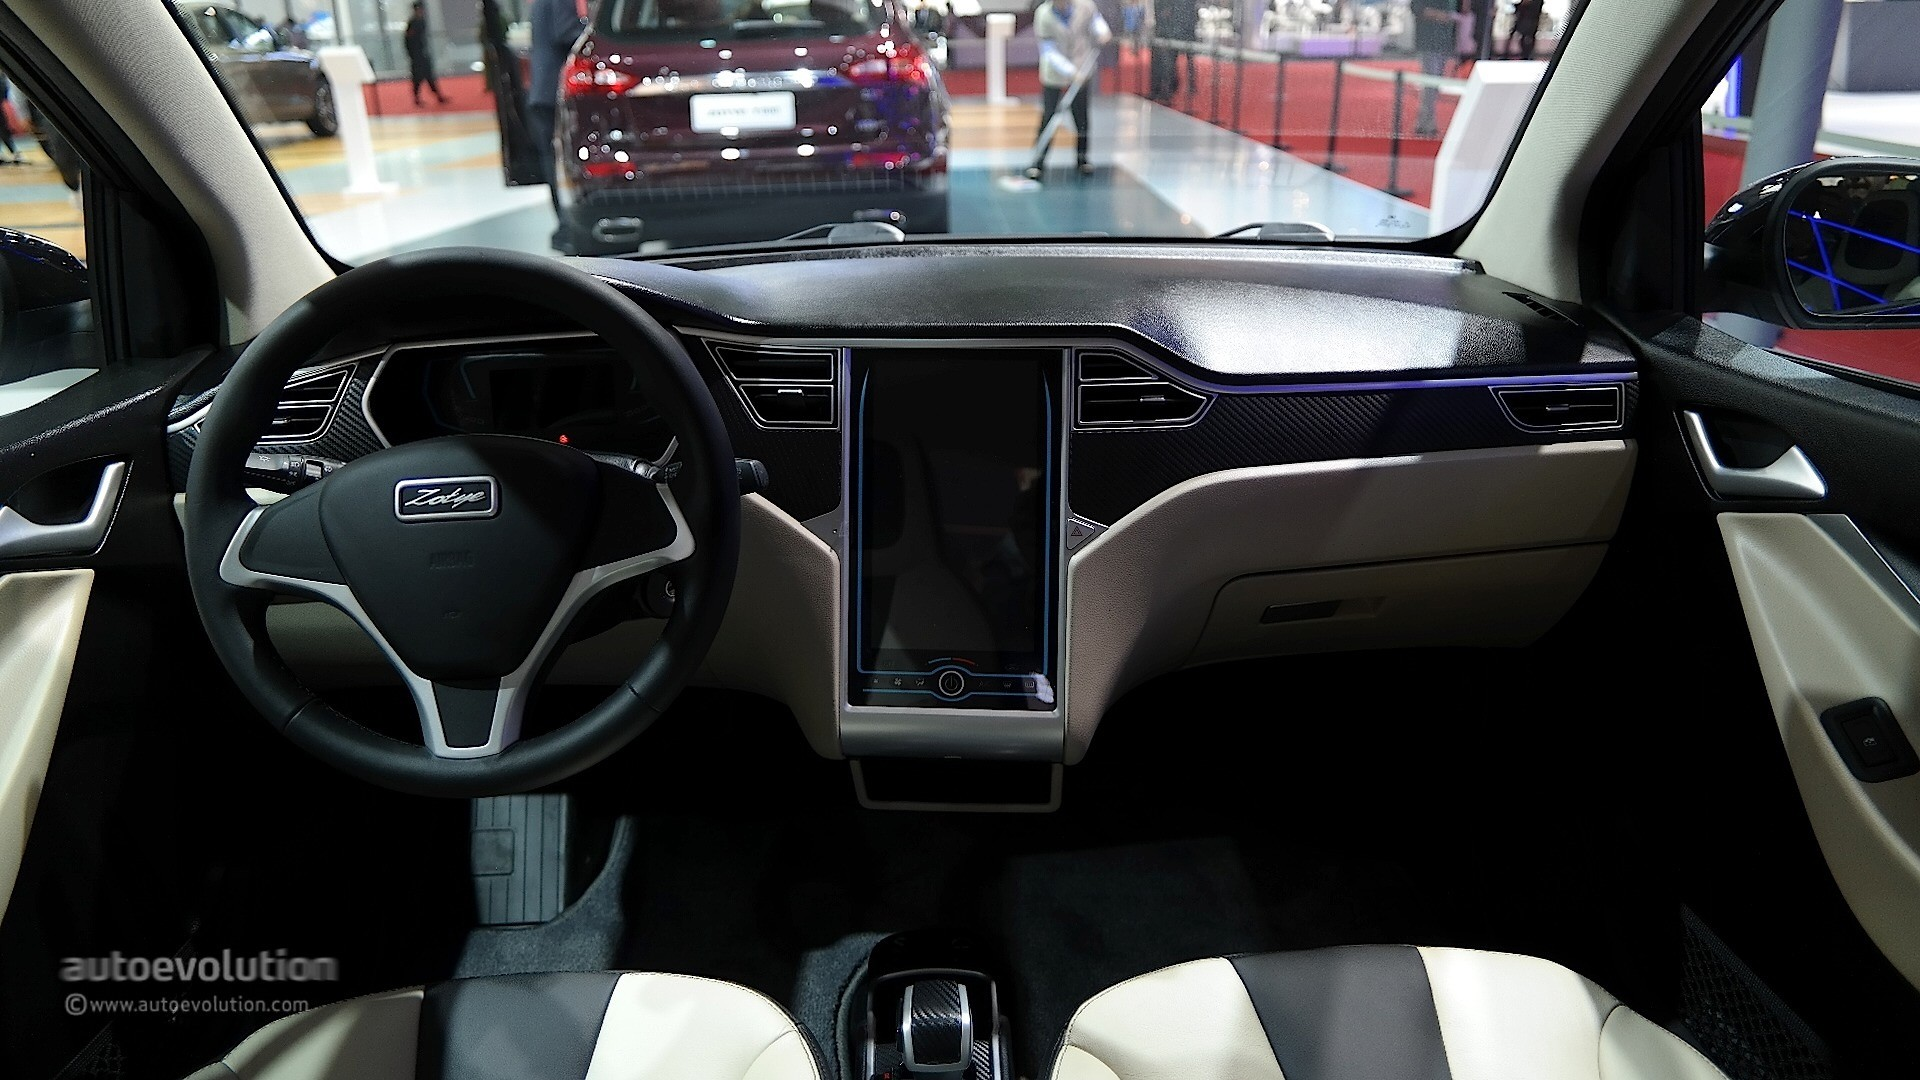 2015 - [Chine] Salon Auto de Shanghai - Page 2 Zotye-e30-ev-shoves-a-tesla-model-s-dashboard-inside-a-smart-chinese-copycat-live-photos_8